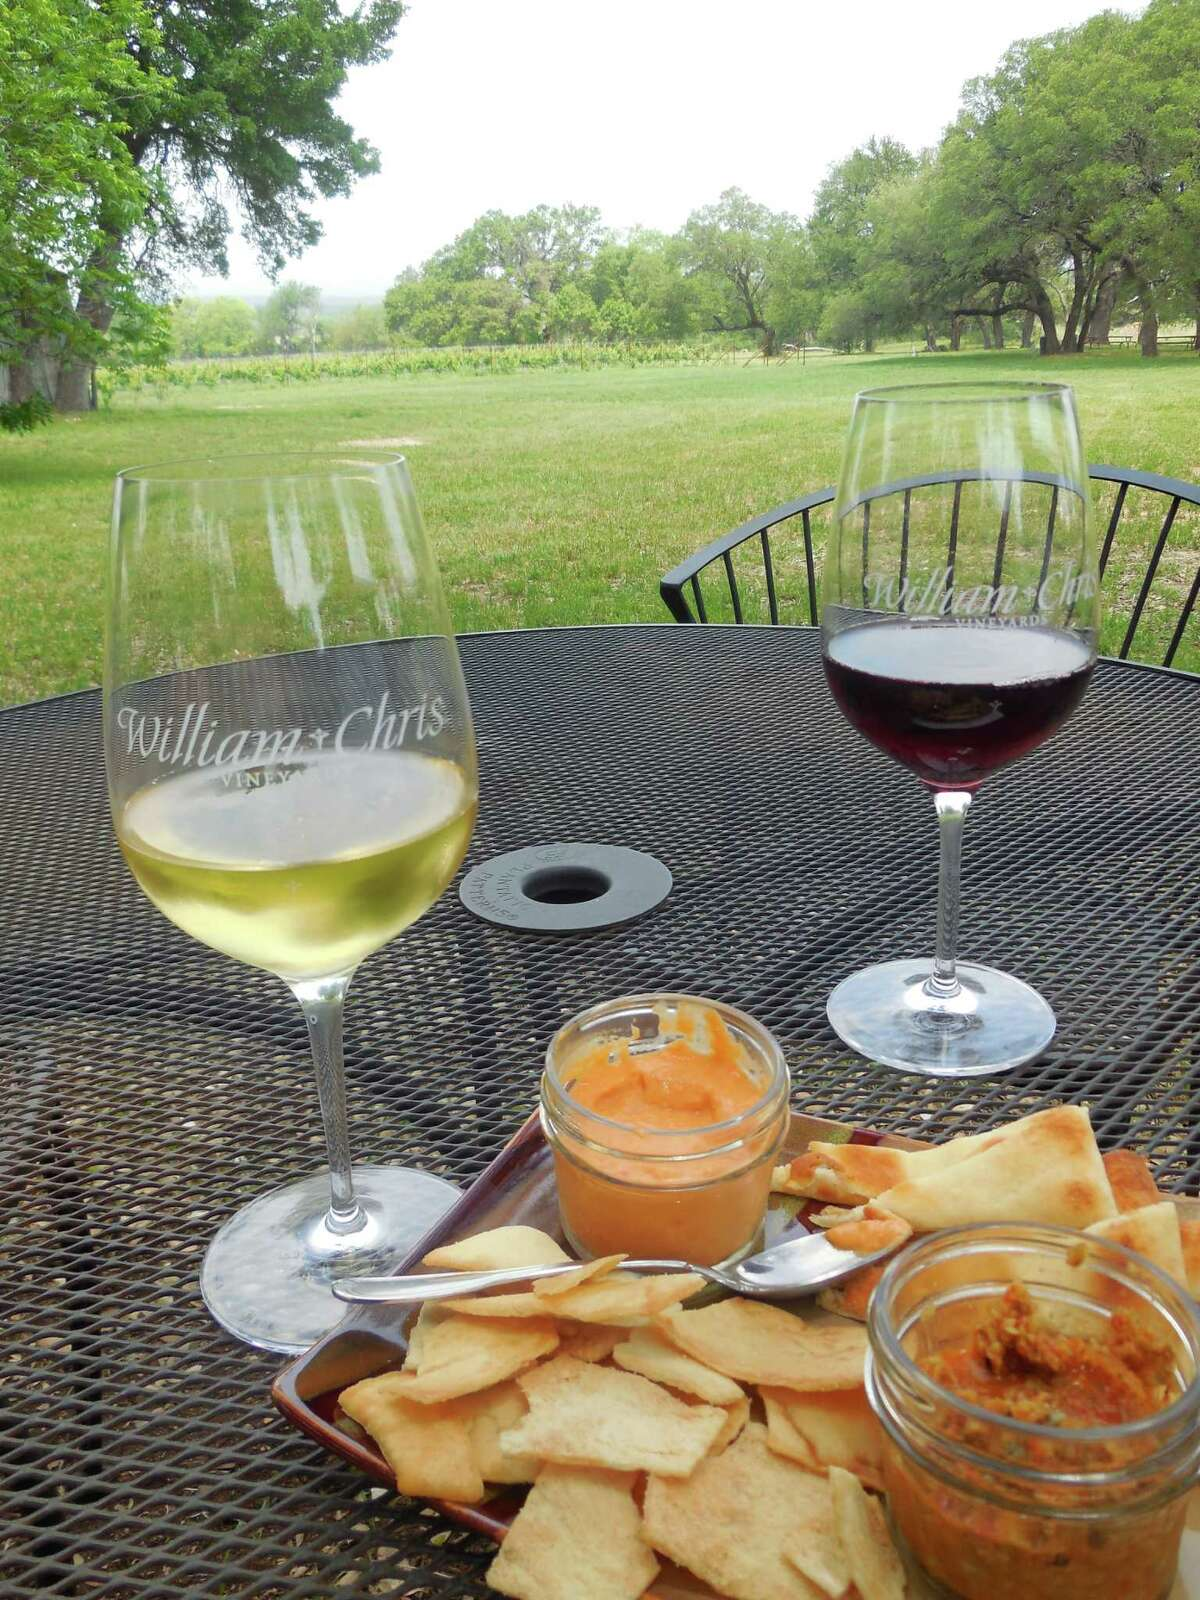 The William Chris Vineyard in Hye, Texas, is one of more than two dozen stops on Wine Road 290 east of Fredericksburg, making the area a competitor to the Napa Valley for wine lovers. Take a few bottles home, rent a limo tour, or just grab a couple of glasses to enjoy on the property's picnic tables with the vineyards in the distance.  Mandatory Credit: Miguel Lecuona, Hill Country Light Photography